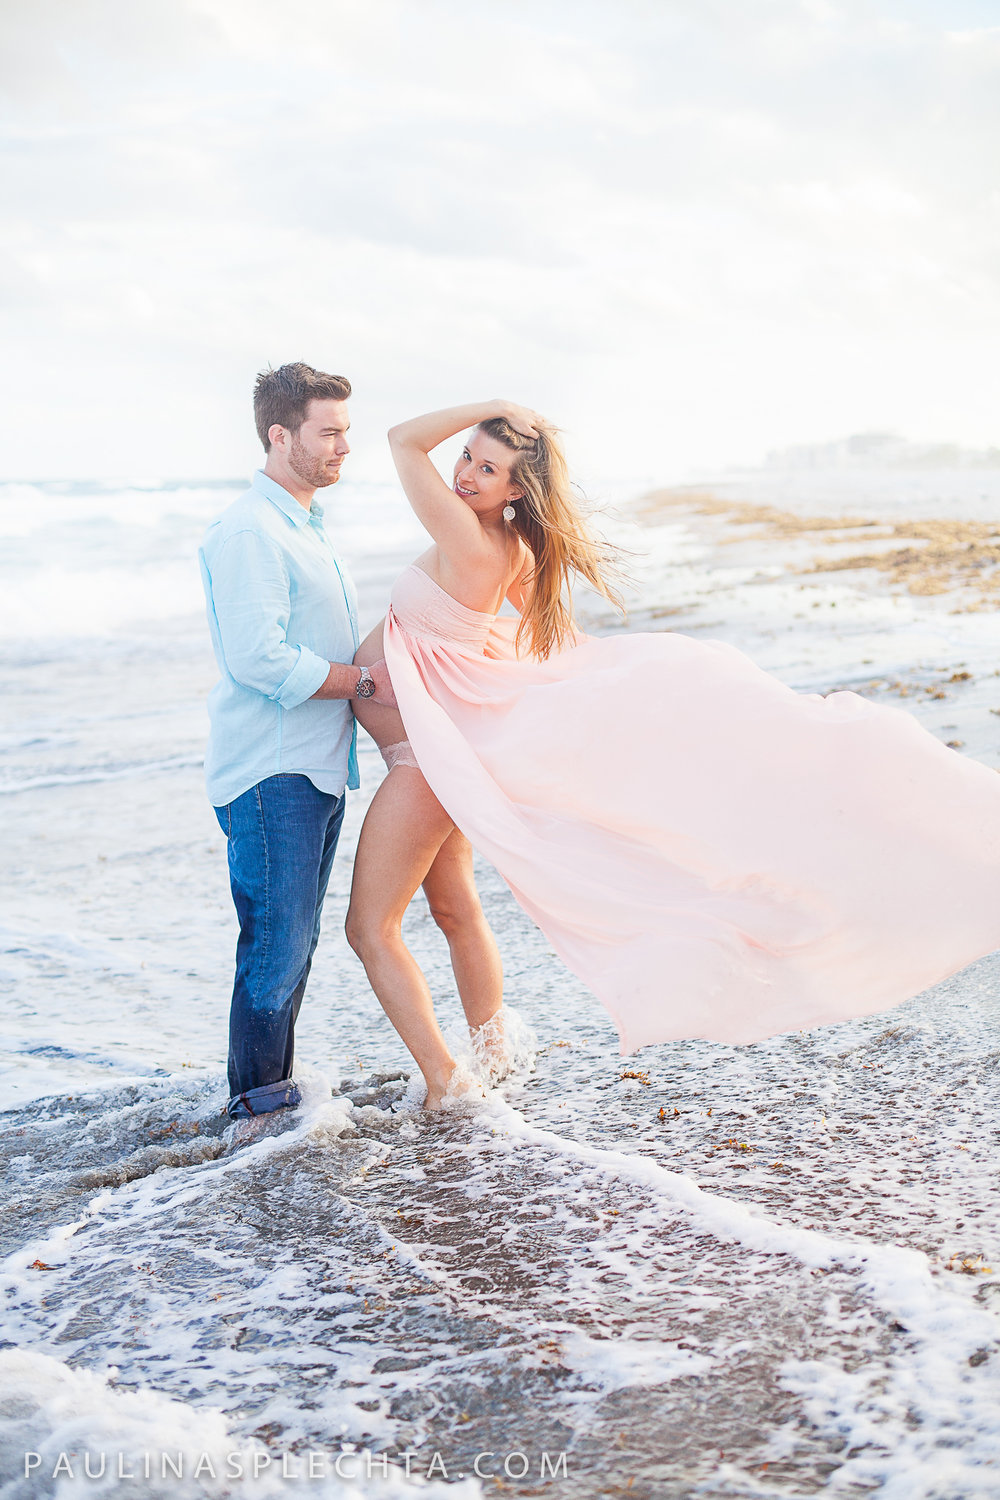 boca-raton-maternity-photographer-pregnancy-photos-shoot-ft-lauderdale-south-florida-gown-dress-newborn-west-palm-beach-delray-30.jpg